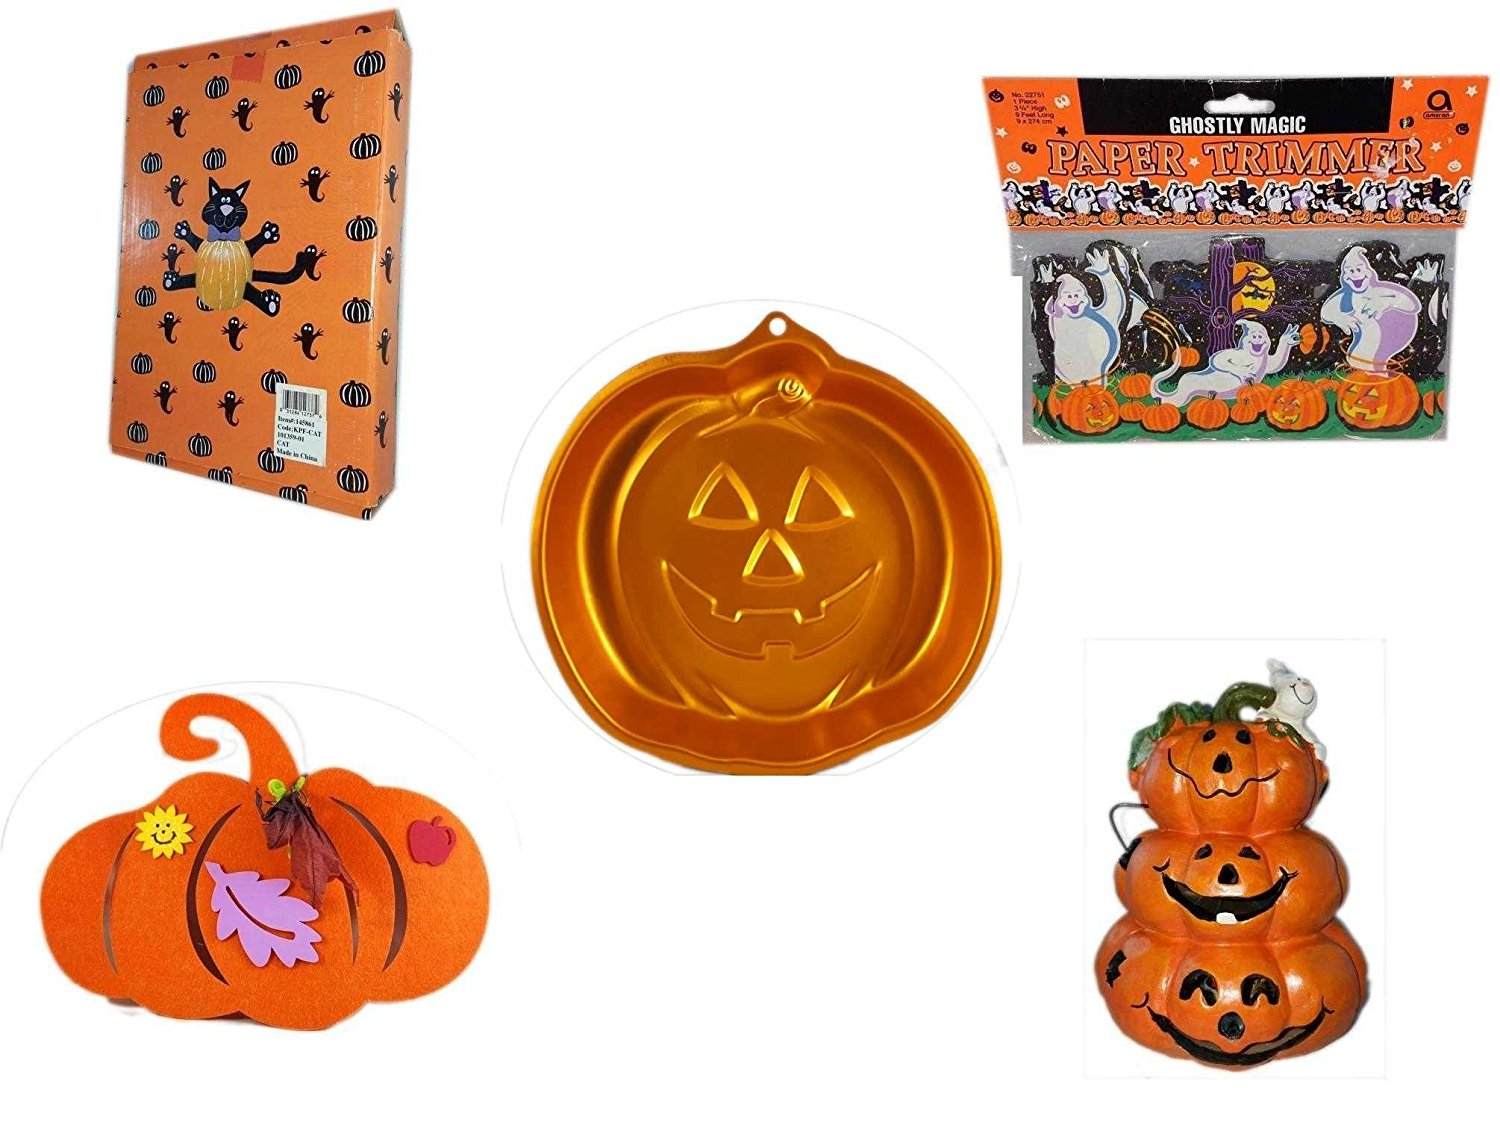 Halloween Fun Gift Bundle [5 piece] - Halloween Cat Pumpkin Push In 5 Piece Head Arms Legs - Ghostly Magic Paper Trimmer 3.75 in x 9 ft. - Wilton Iridescents Jack-O-Lantern Pan - Halloween Felt Pump